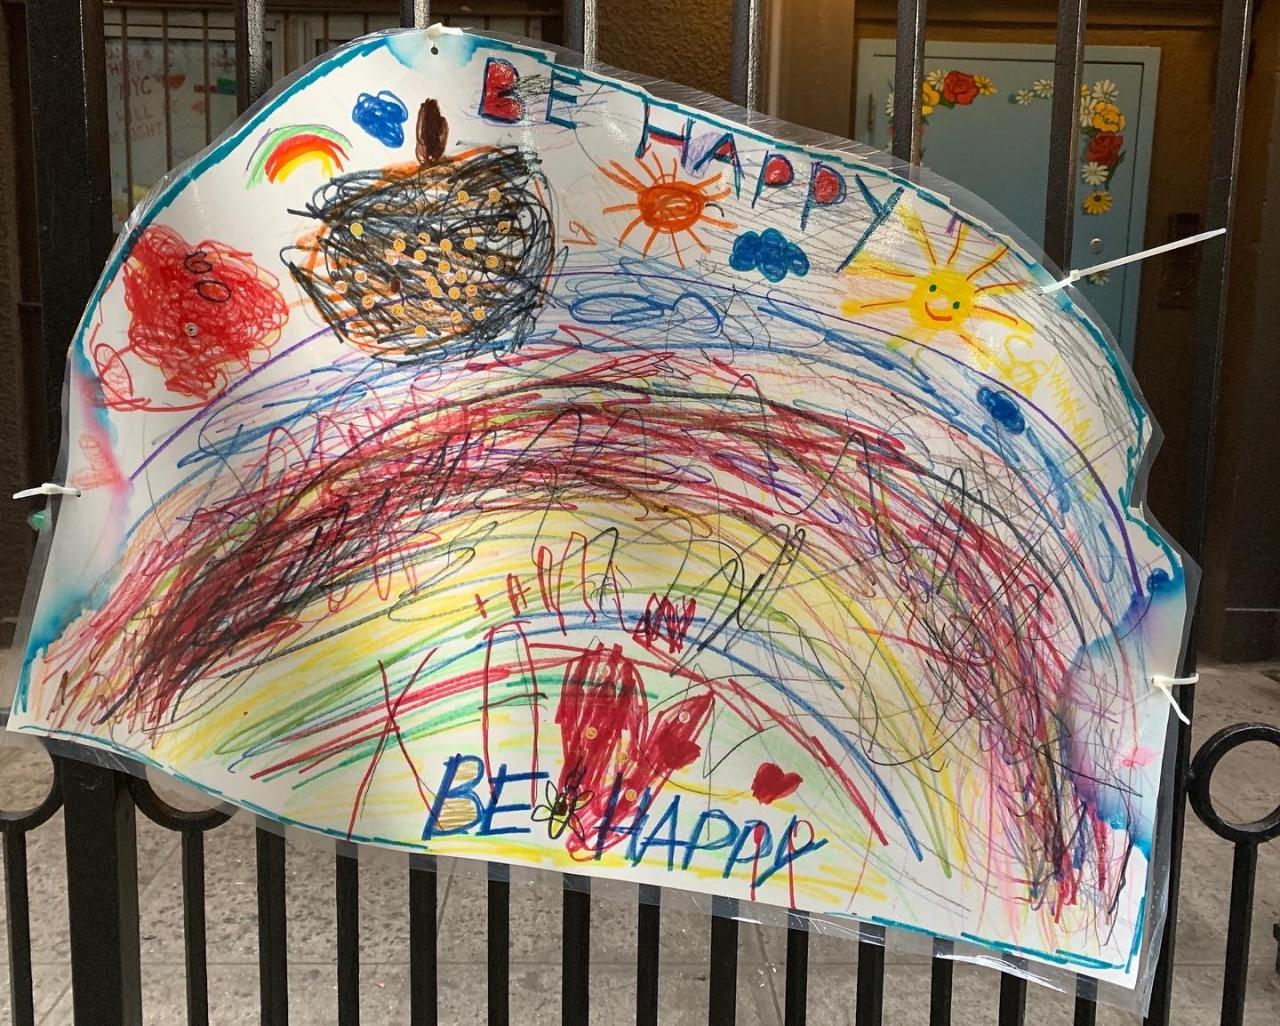 Drawing by children of the Beginnings Nursery School by Stuyvesant Square Park